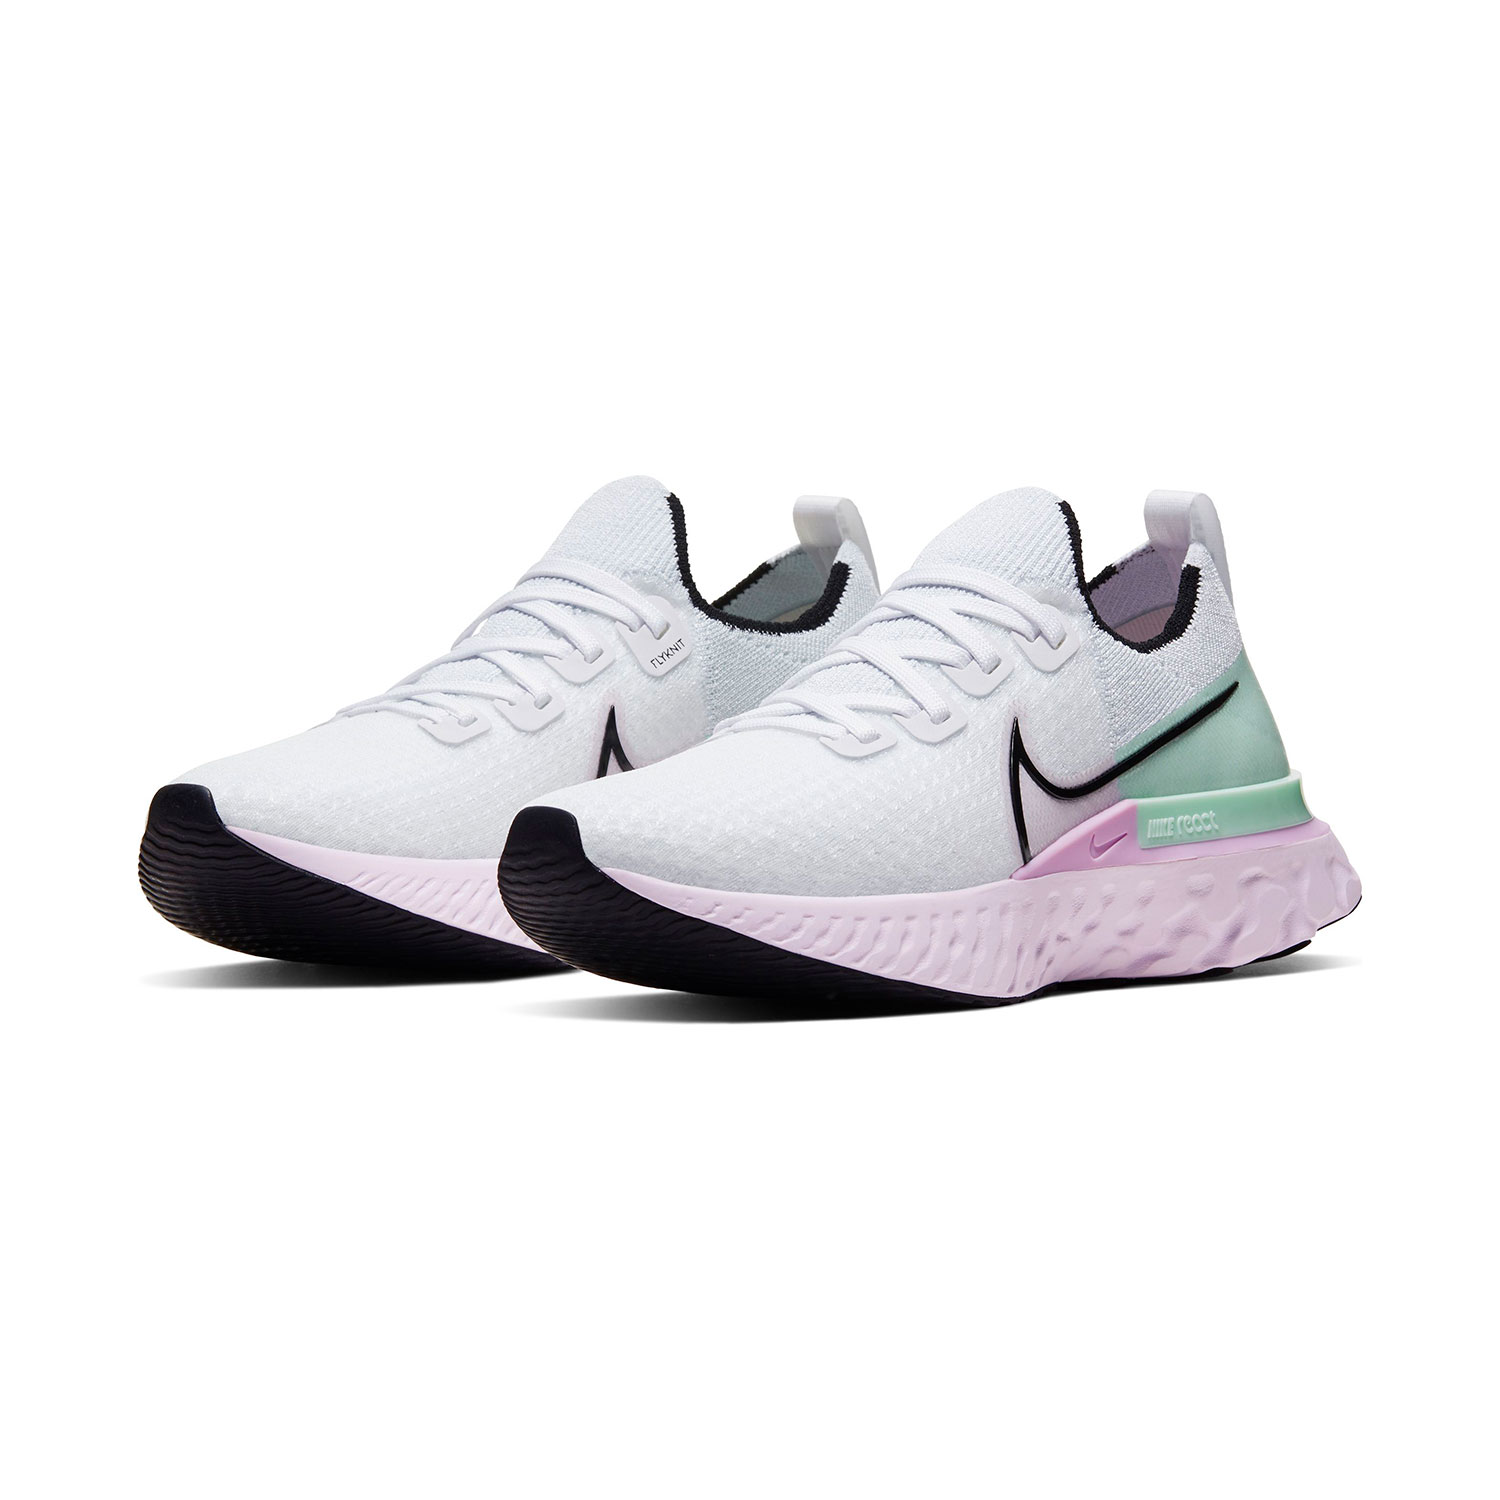 Nike React Infinity Run Flyknit - White/Black/Iced Lilac/Pistachio Frost